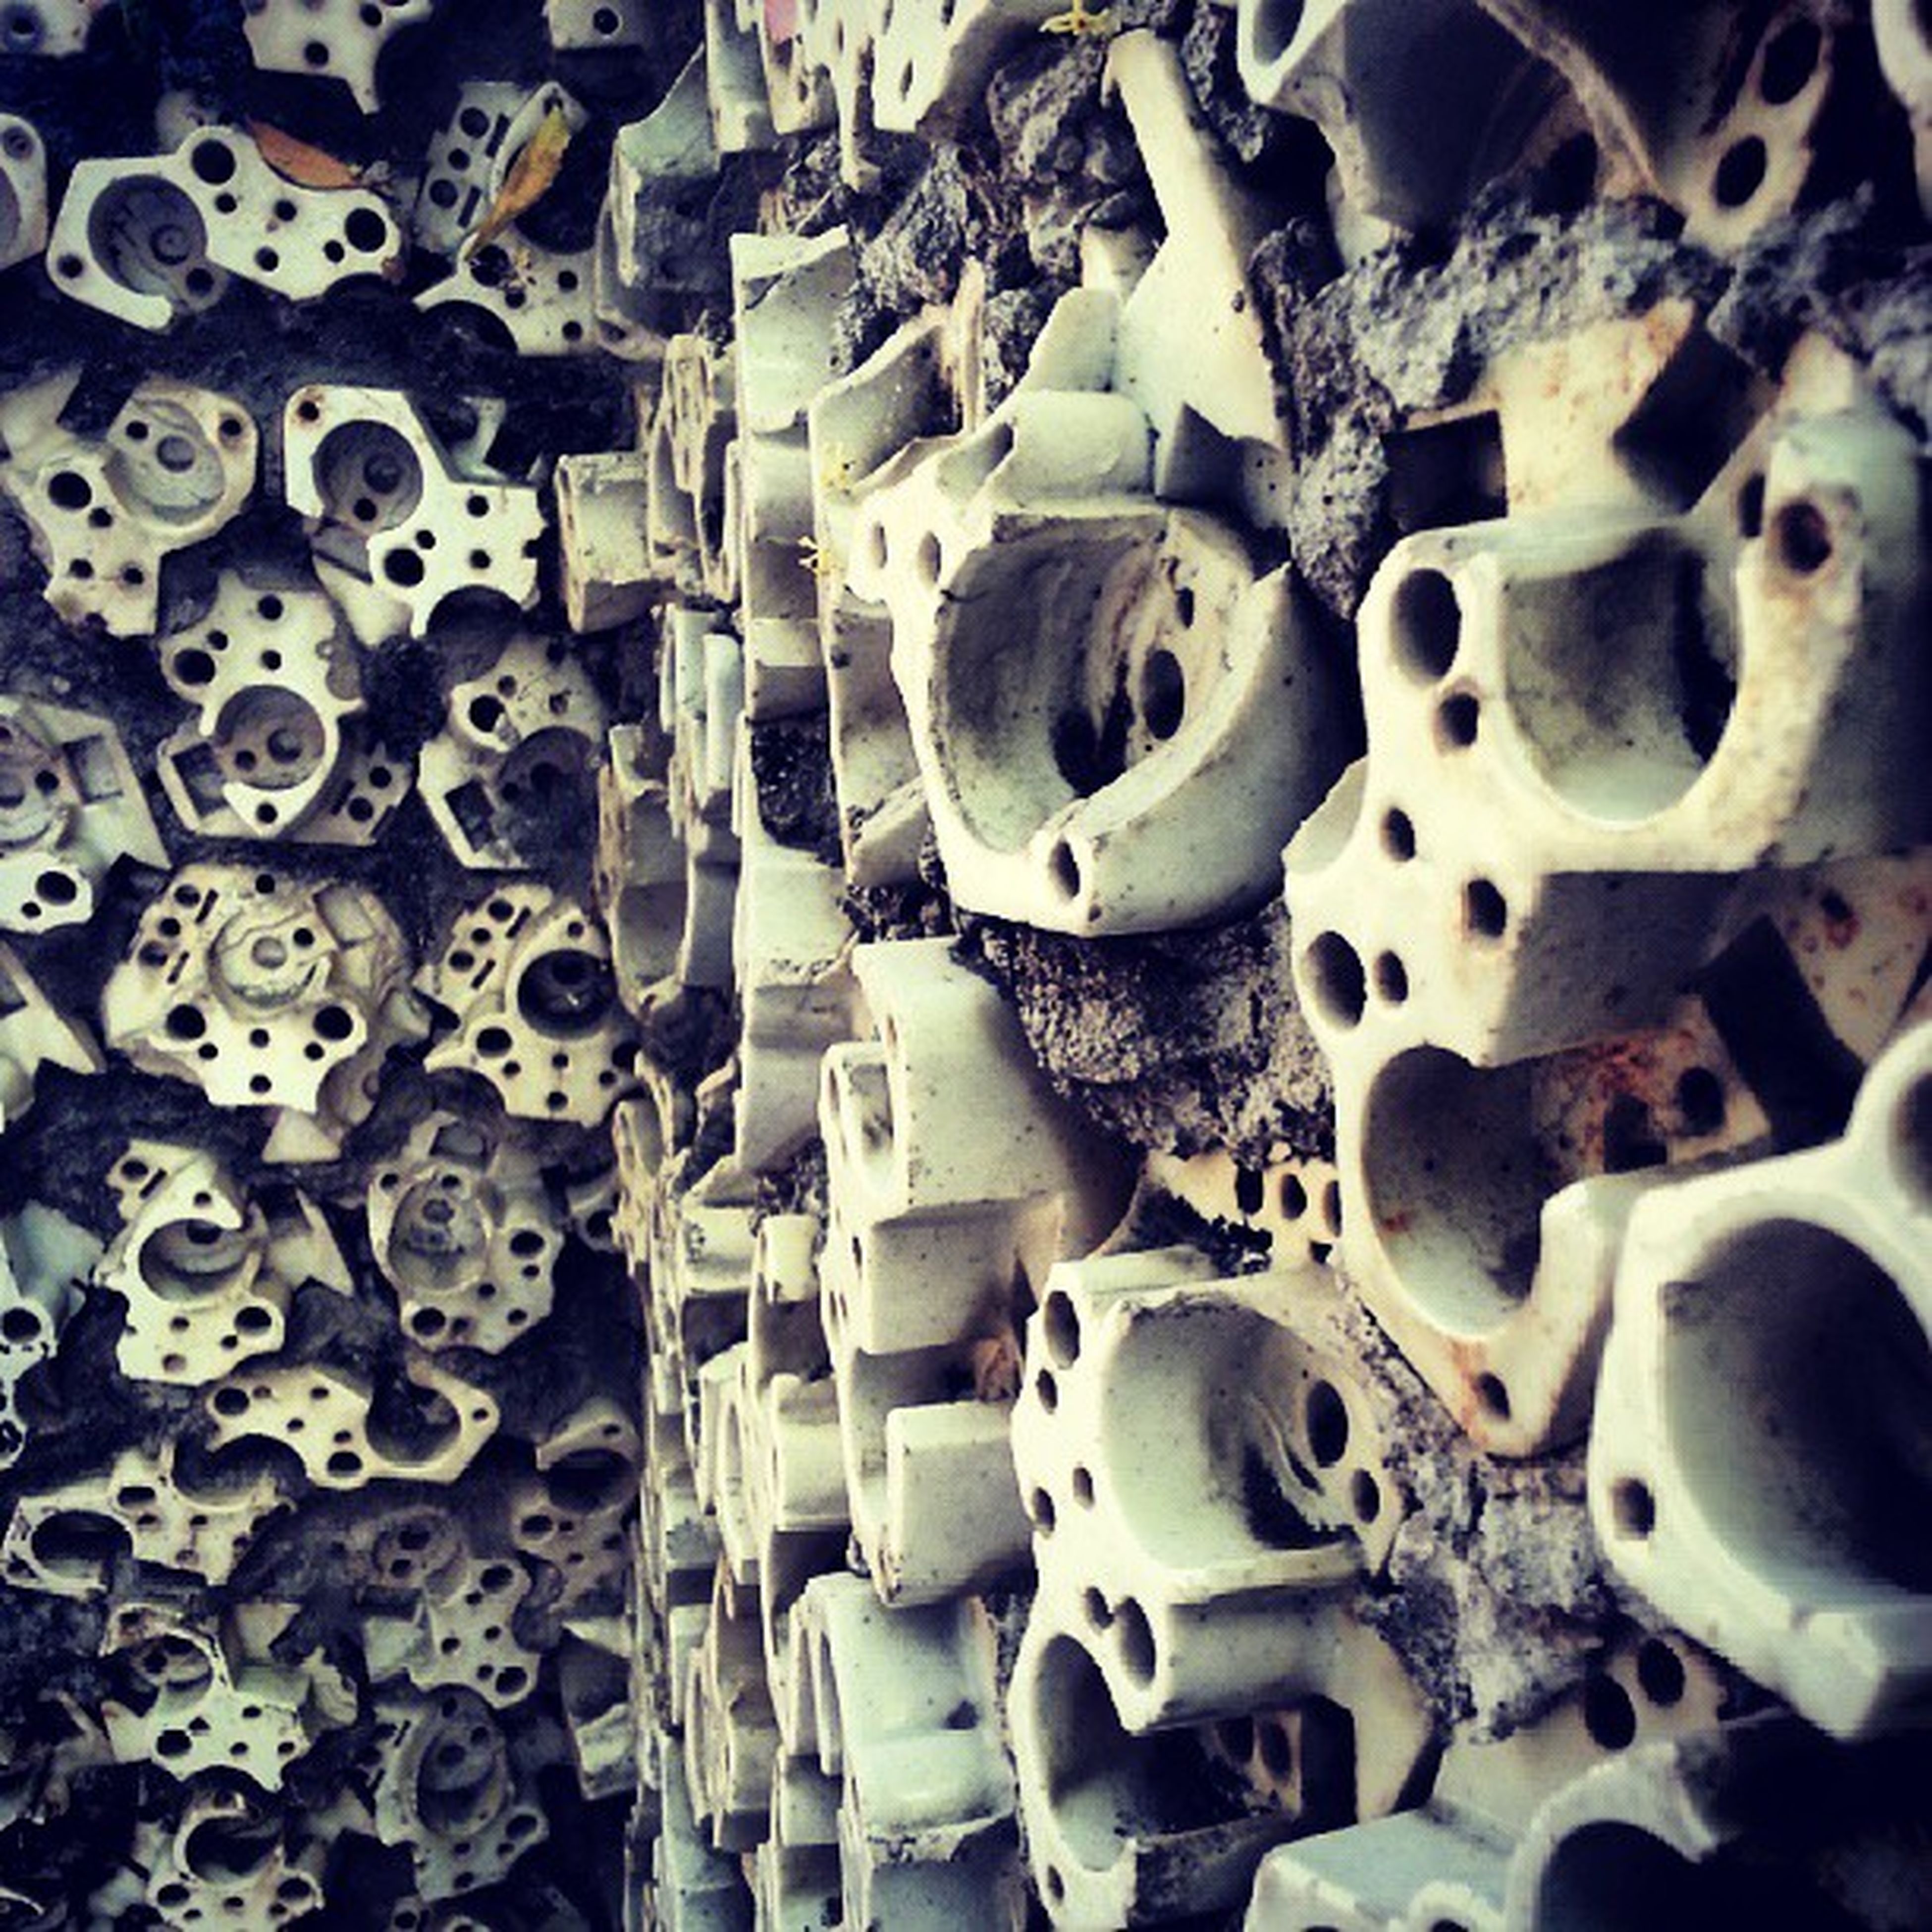 metal, large group of objects, abundance, full frame, obsolete, abandoned, close-up, damaged, backgrounds, old, metallic, indoors, run-down, deterioration, no people, stack, still life, day, high angle view, machine part